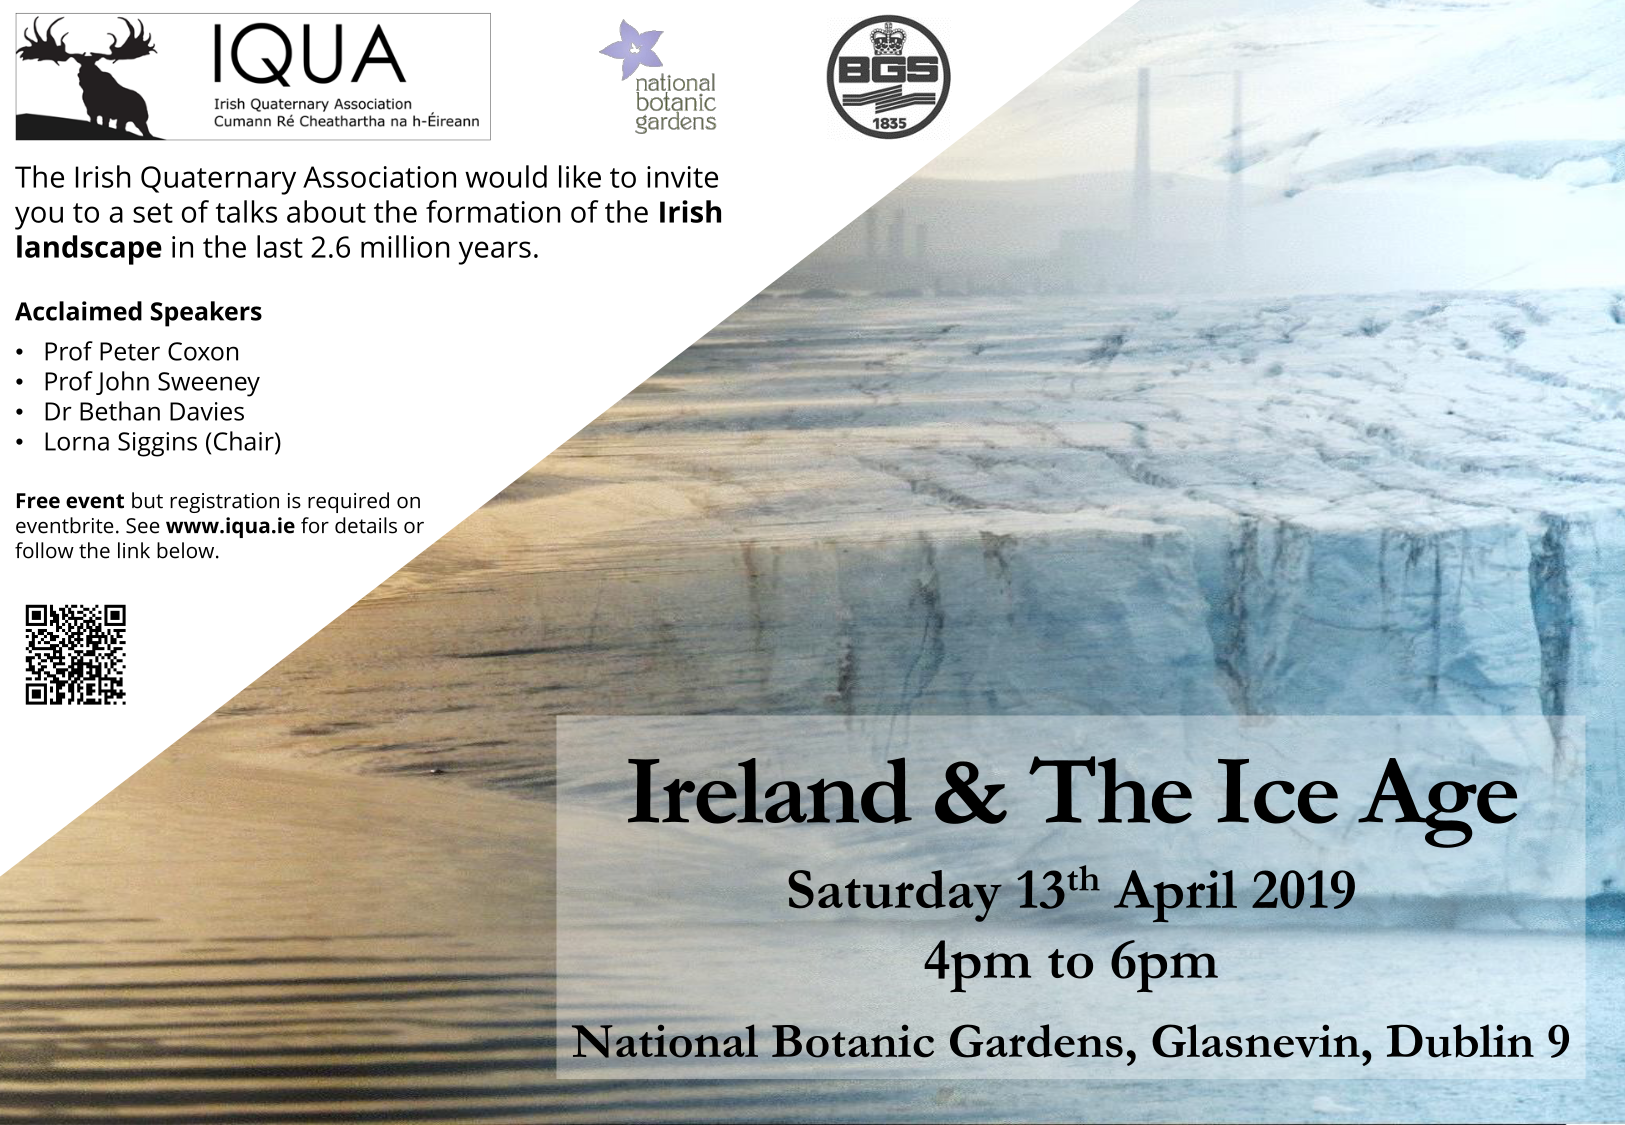 Ireland and the Ice Age: a public event